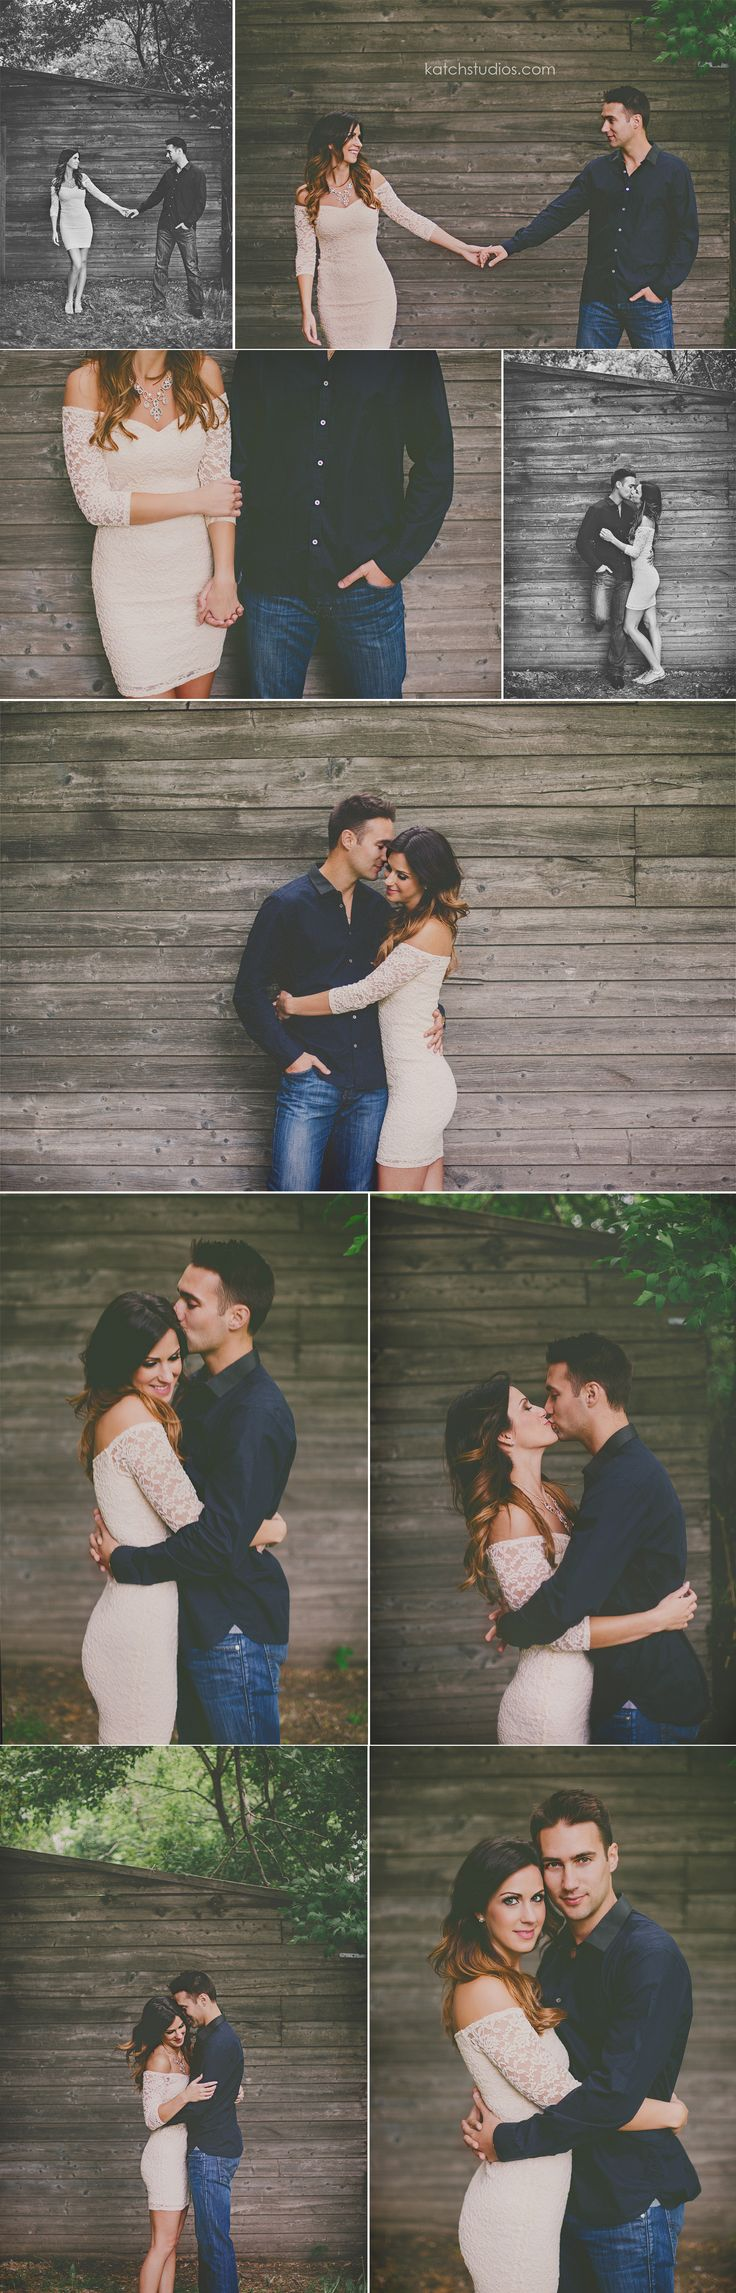 tamara & phil: engaged | edmonton wedding photographer » Edmonton Photographer KATCH STUDIOS | the blog